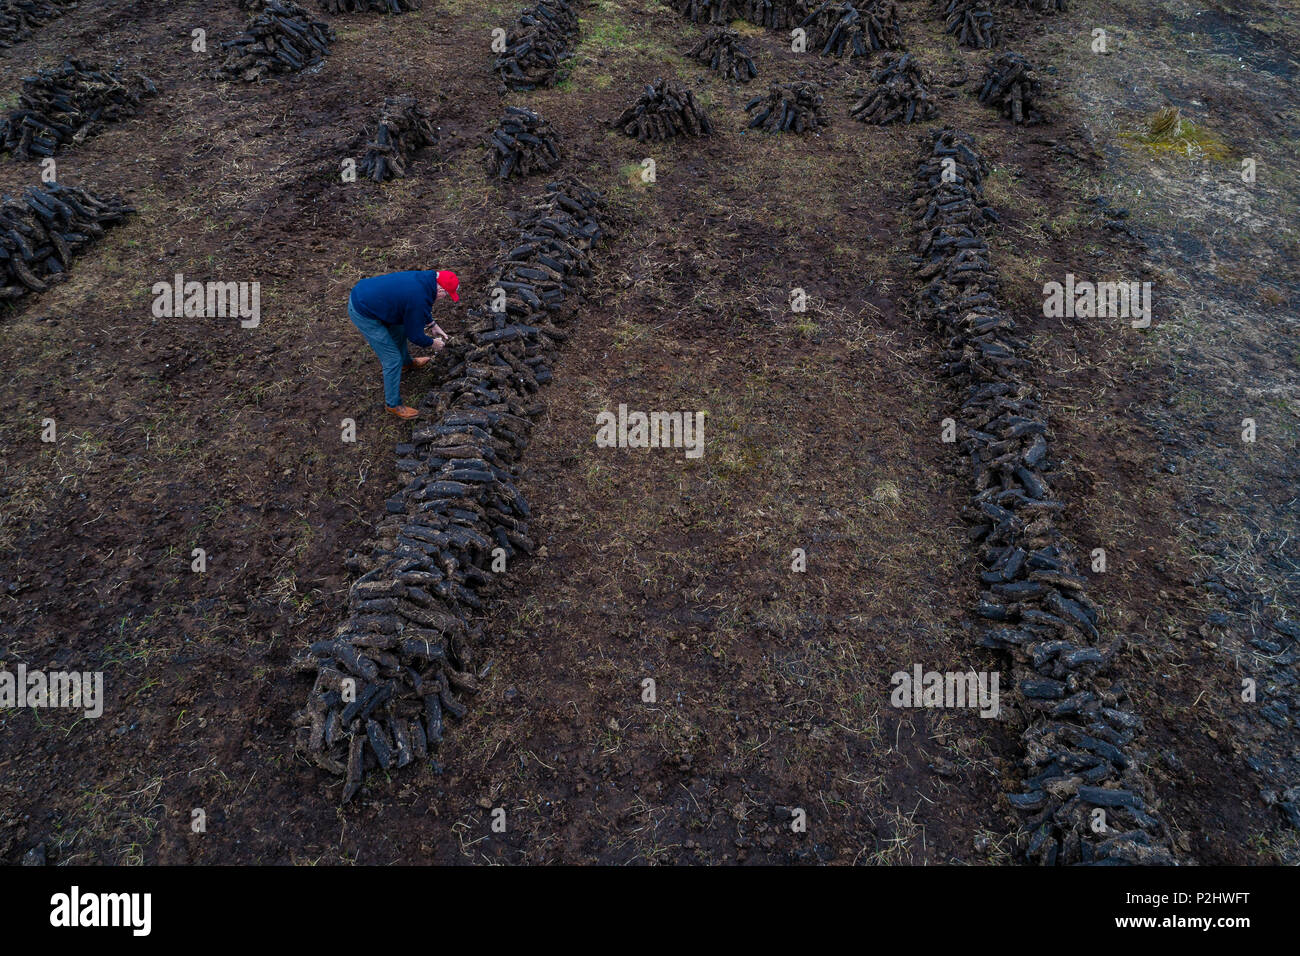 Man piling dry turf into rows at Peat Bog, Renard County Kerry Ireland - Stock Image